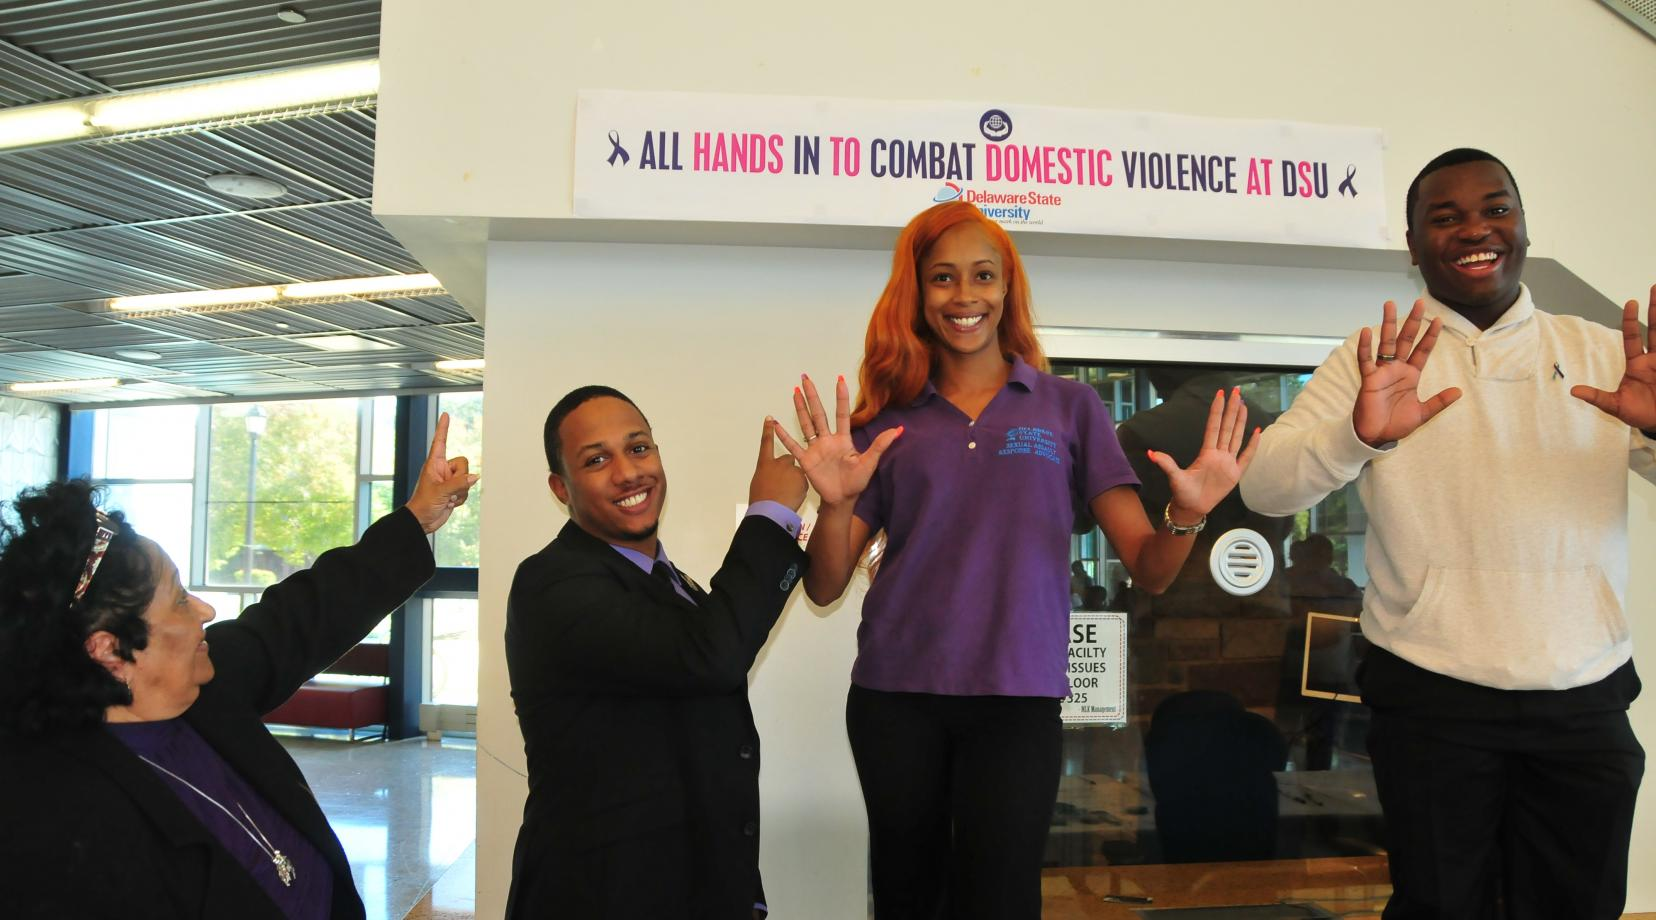 """<p>(L-r)  Dr. Pauline Meek, associate director of the Office of Counseling Services; Kyle Sheppard, SARA member; Silver Debrick, prevention specialist in the DSU Office of Career Services; and Malcolm L. Washington,  SARA member, stand with their campaign theme """"All Hand in to Combat Domestic Violence at DSU</p>"""